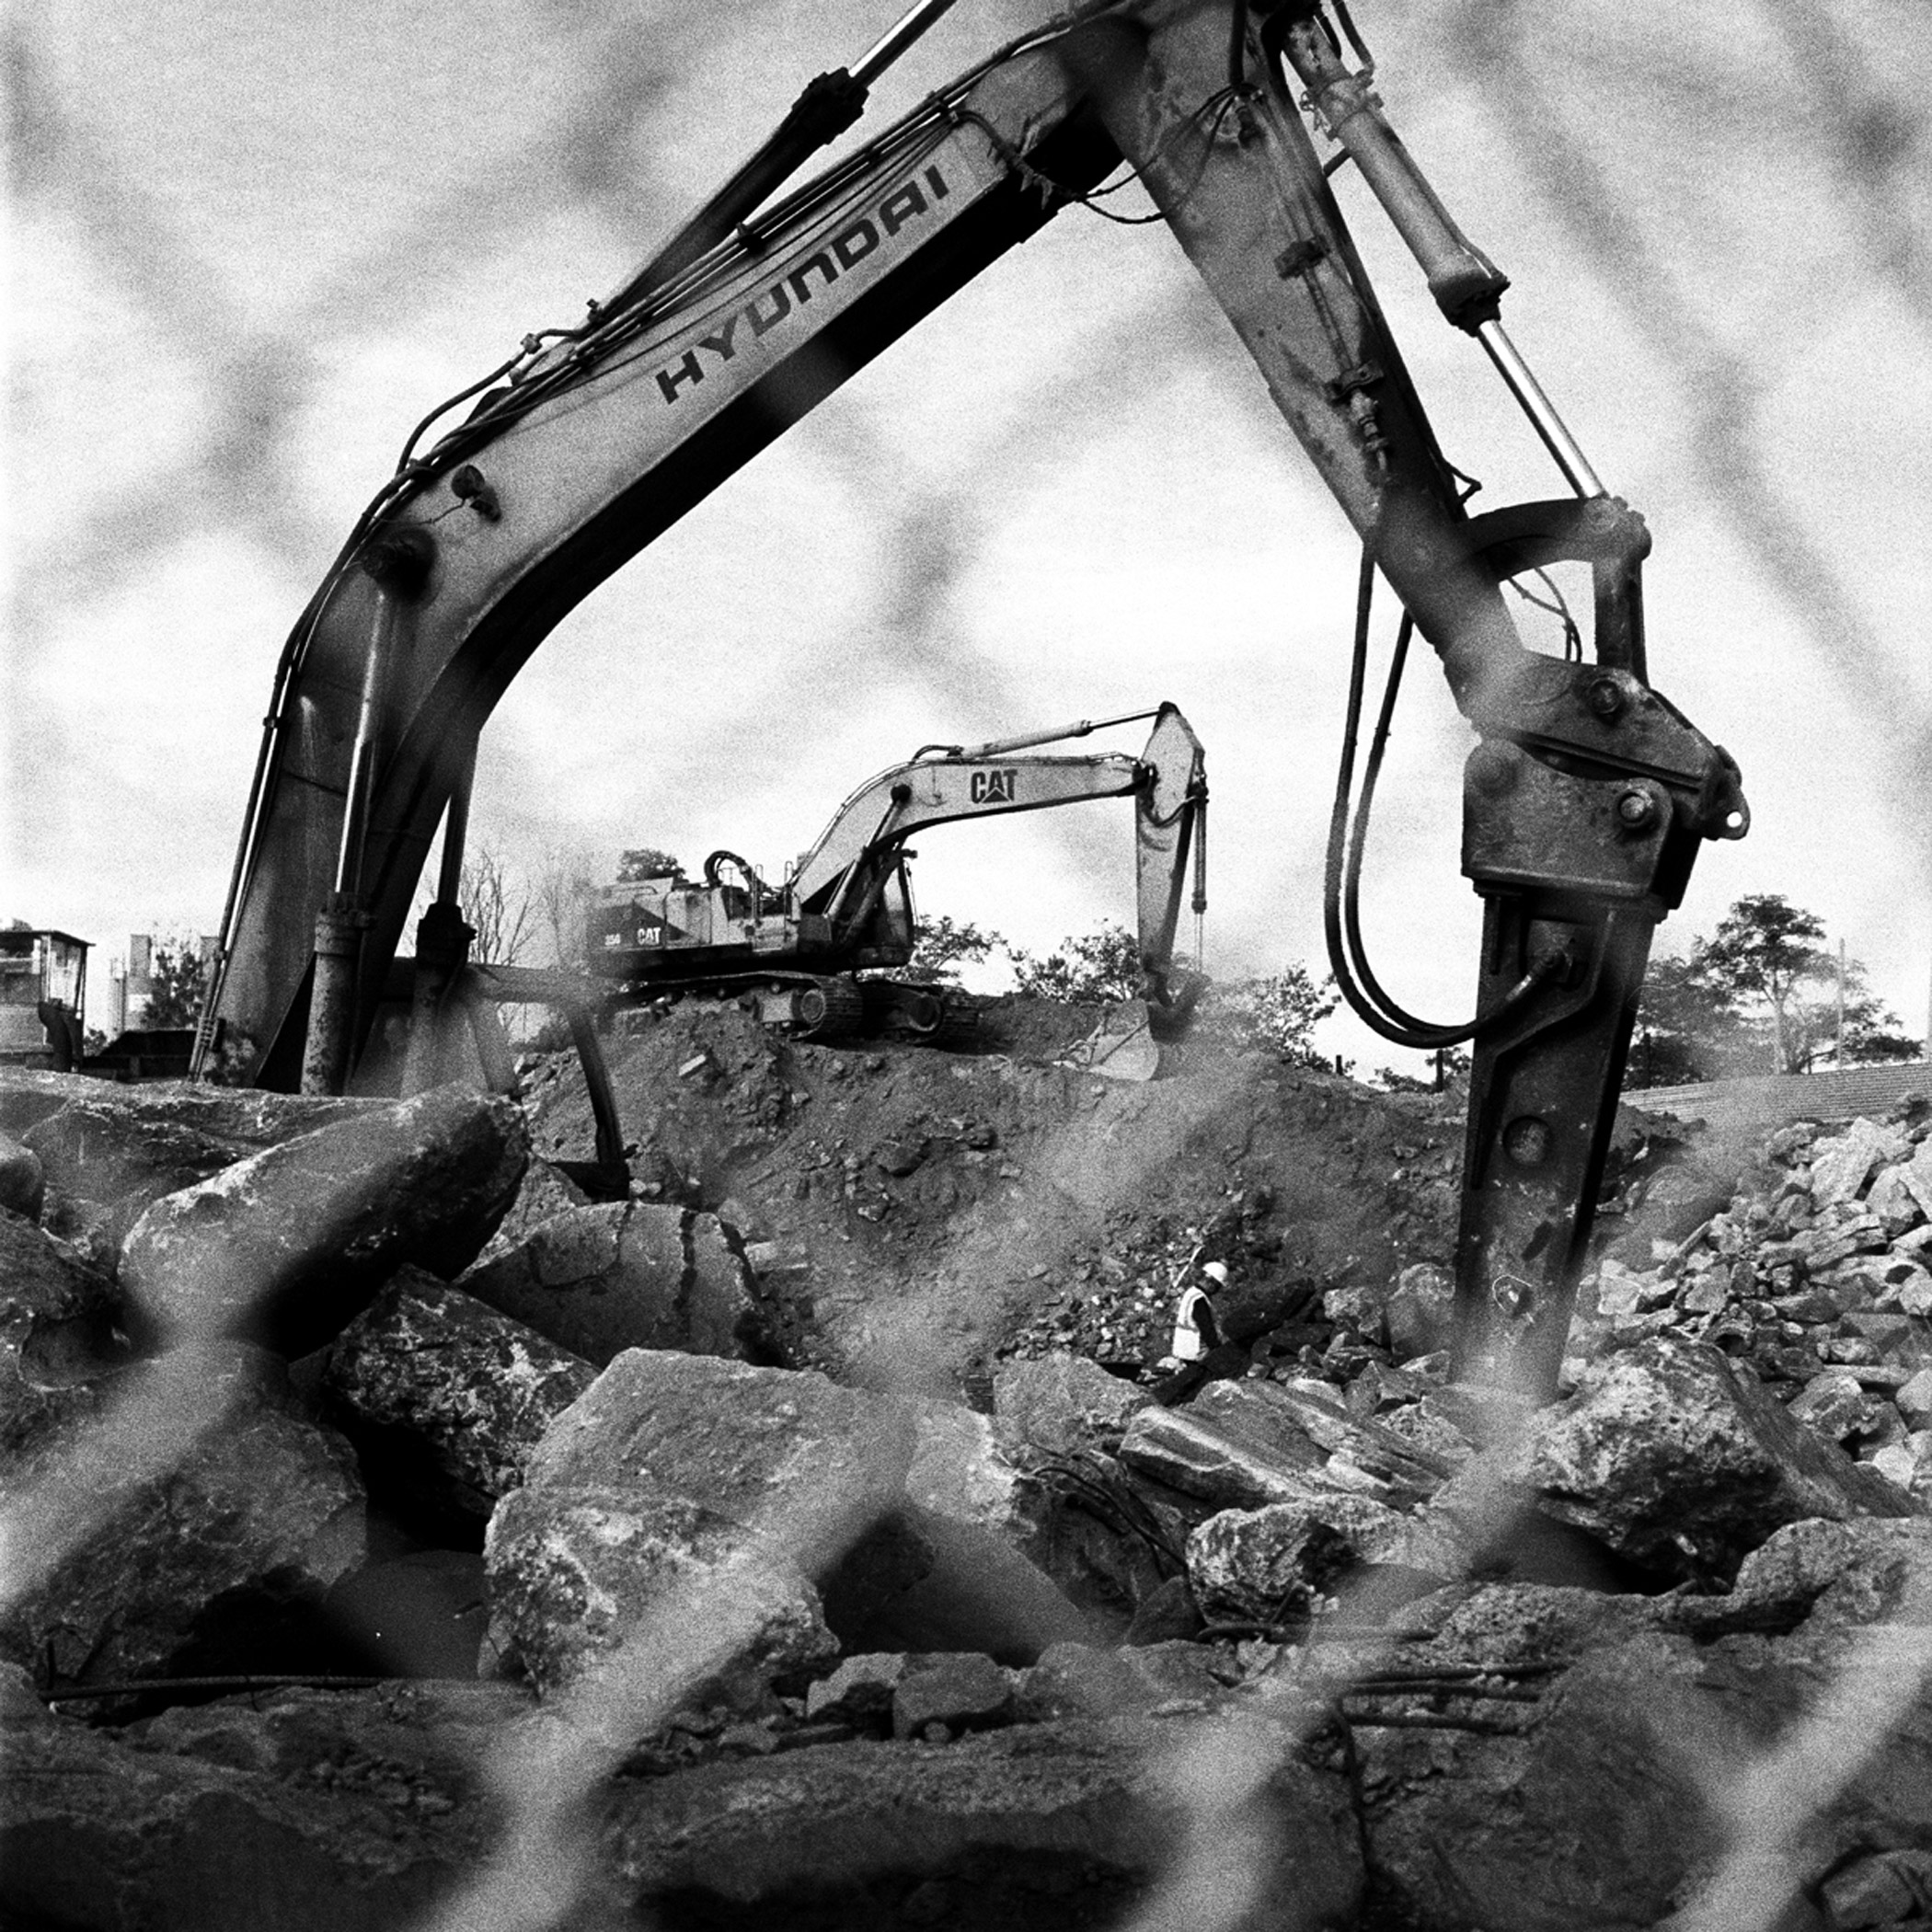 Workers between backhoe loaders break up old chunks of concrete and mince them into fine pebbles for reuse as filler on new concrete projects in Maspeth, Queens, N.Y., November 2015.